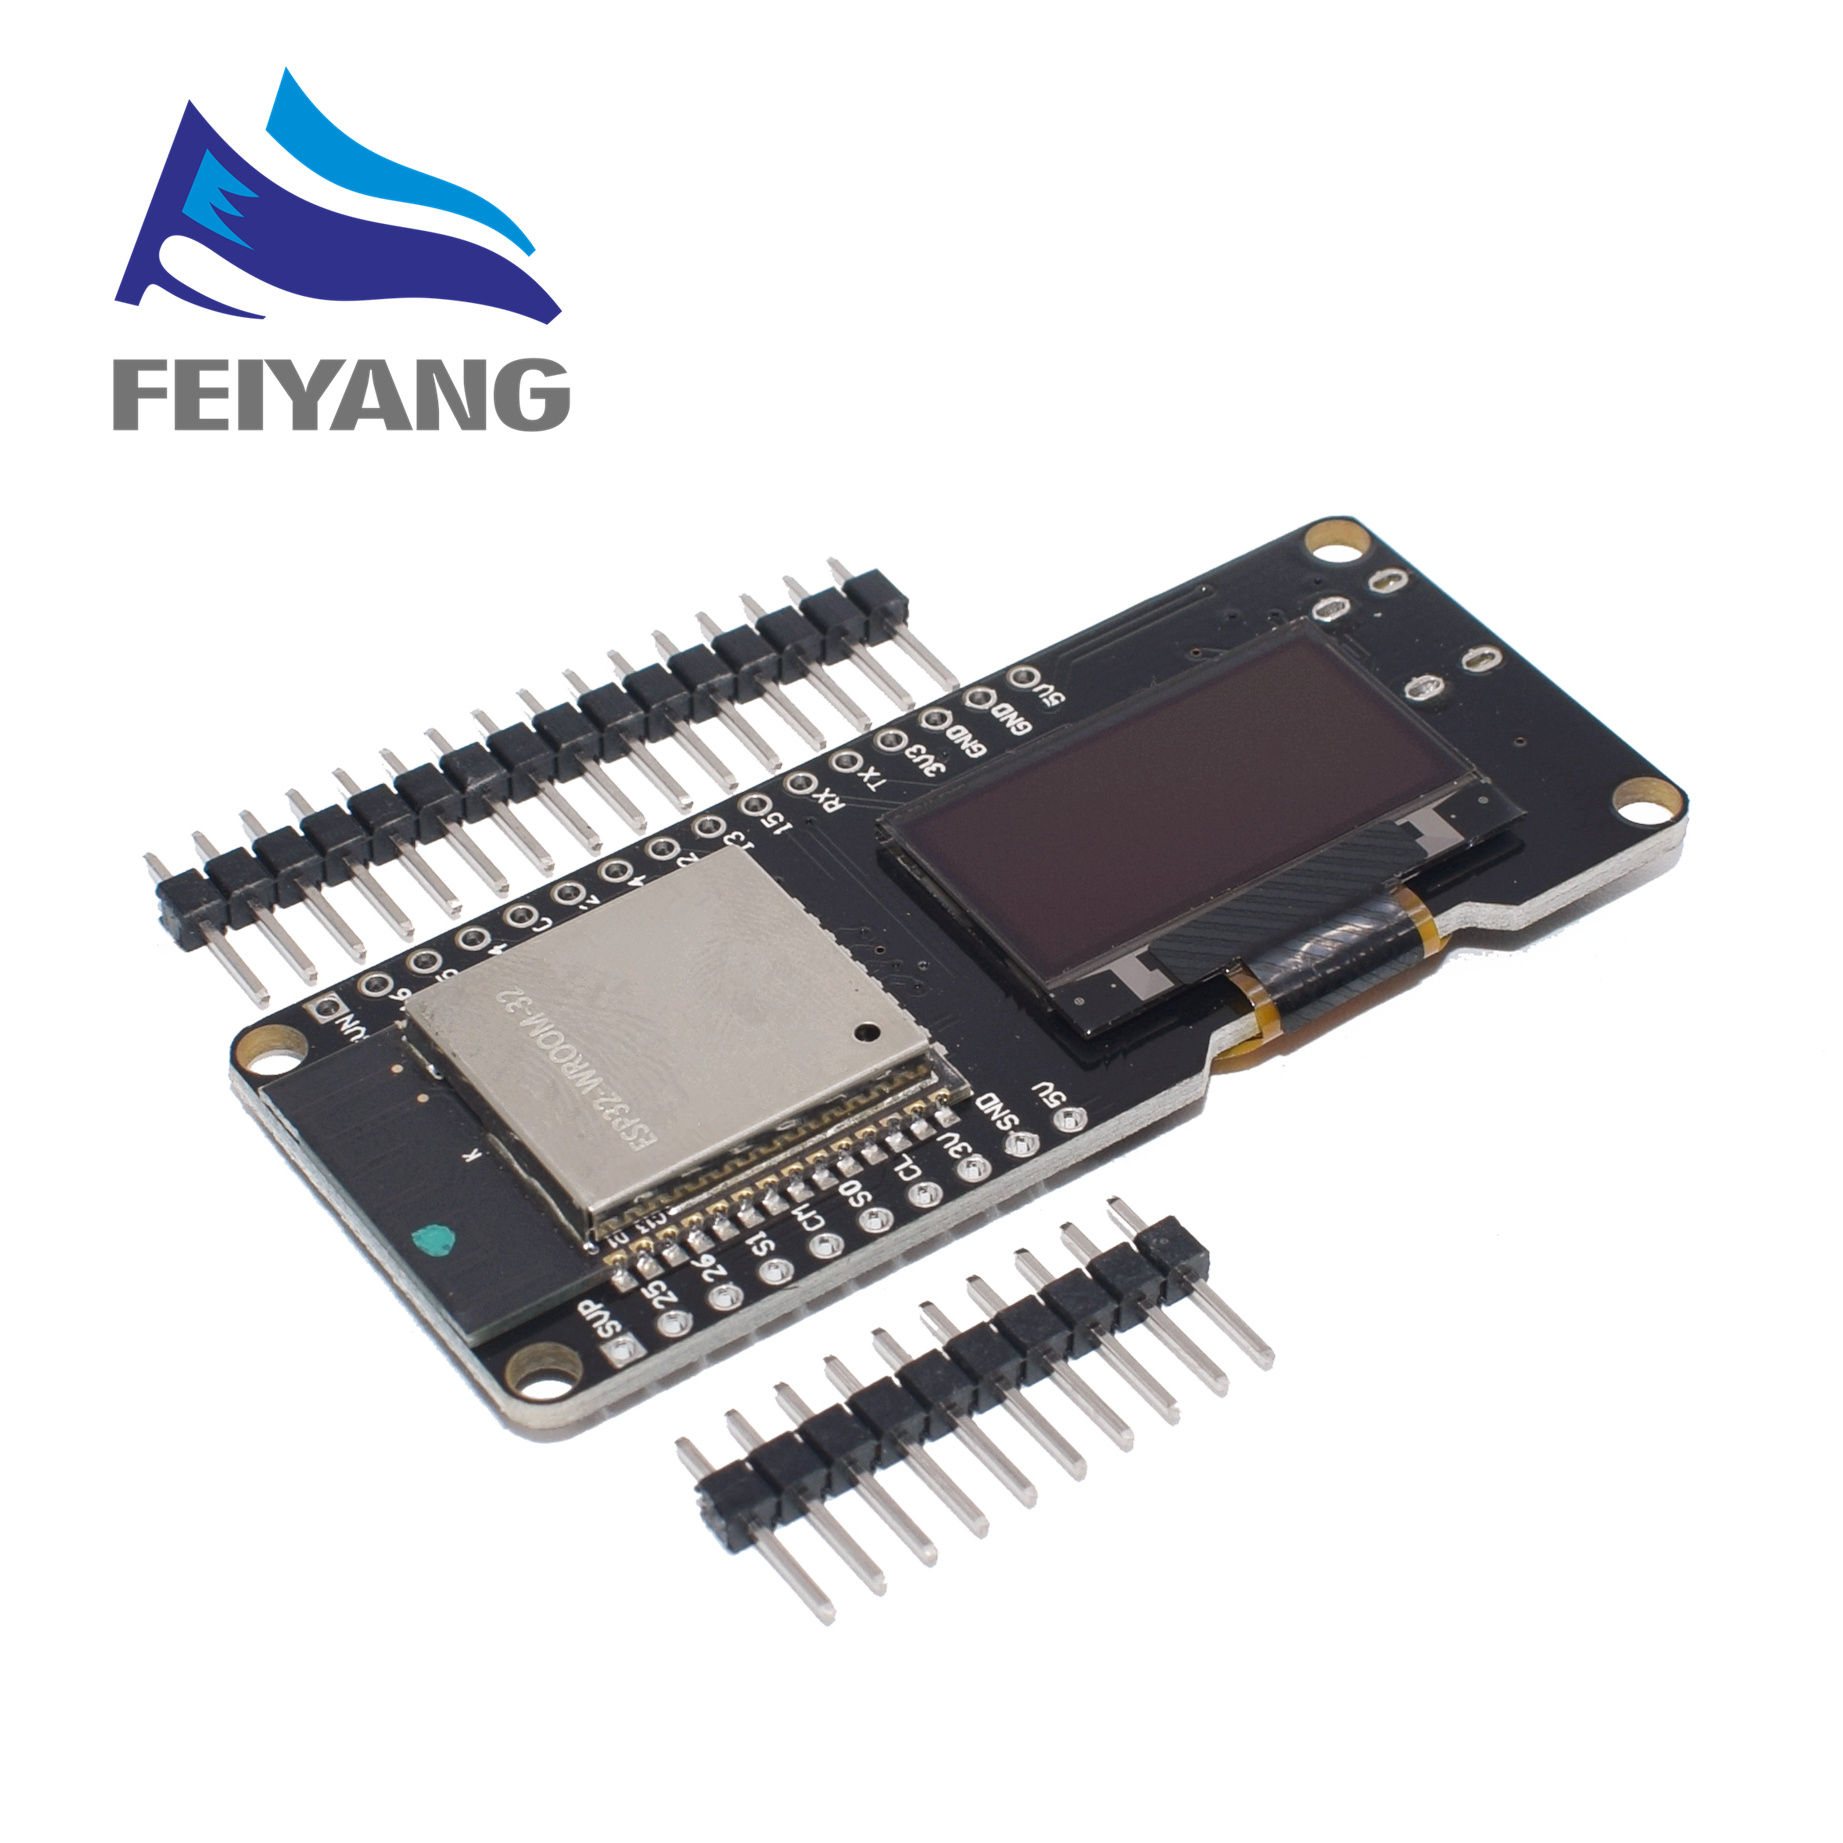 10PCS WEMOS ESP32 OLED &for Arduino ESP32 OLED WiFi Modules+ Bluetooth Dual ESP 32 ESP 32S ESP8266 &OLED-in Integrated Circuits from Electronic Components & Supplies